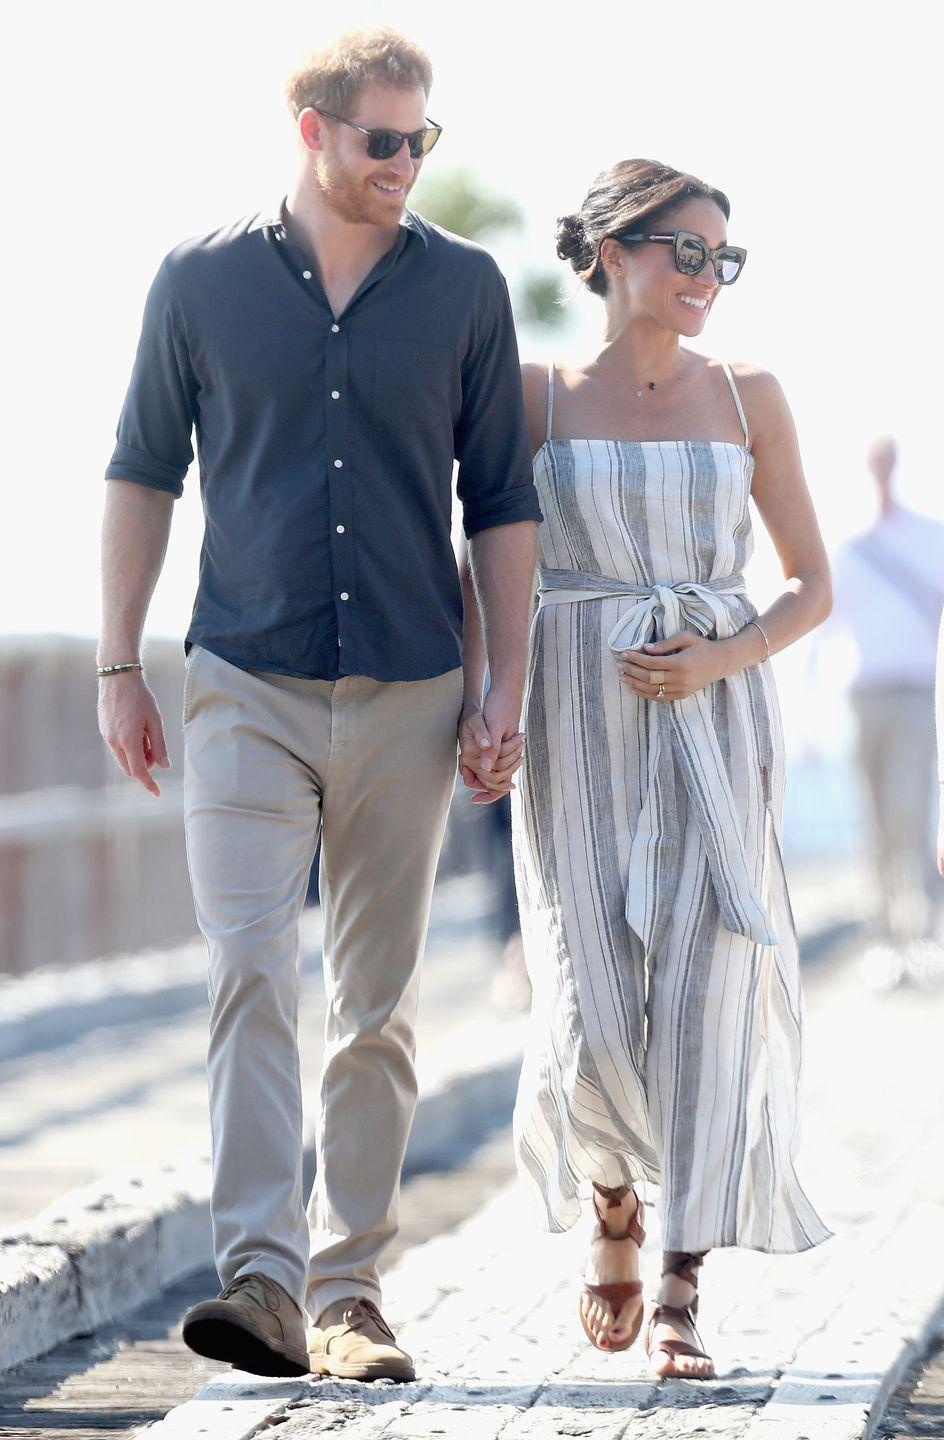 """<p>When she was pregnant with <a href=""""https://www.townandcountrymag.com/society/tradition/g27376121/archie-harrison-mountbatten-windsor-photos-news/"""" rel=""""nofollow noopener"""" target=""""_blank"""" data-ylk=""""slk:Archie"""" class=""""link rapid-noclick-resp"""">Archie</a>, Meghan chose a loose blue and white striped dress with a tie waist. She and Prince Harry chose this summery attire for a visit to Fraser Island, Australia.</p>"""